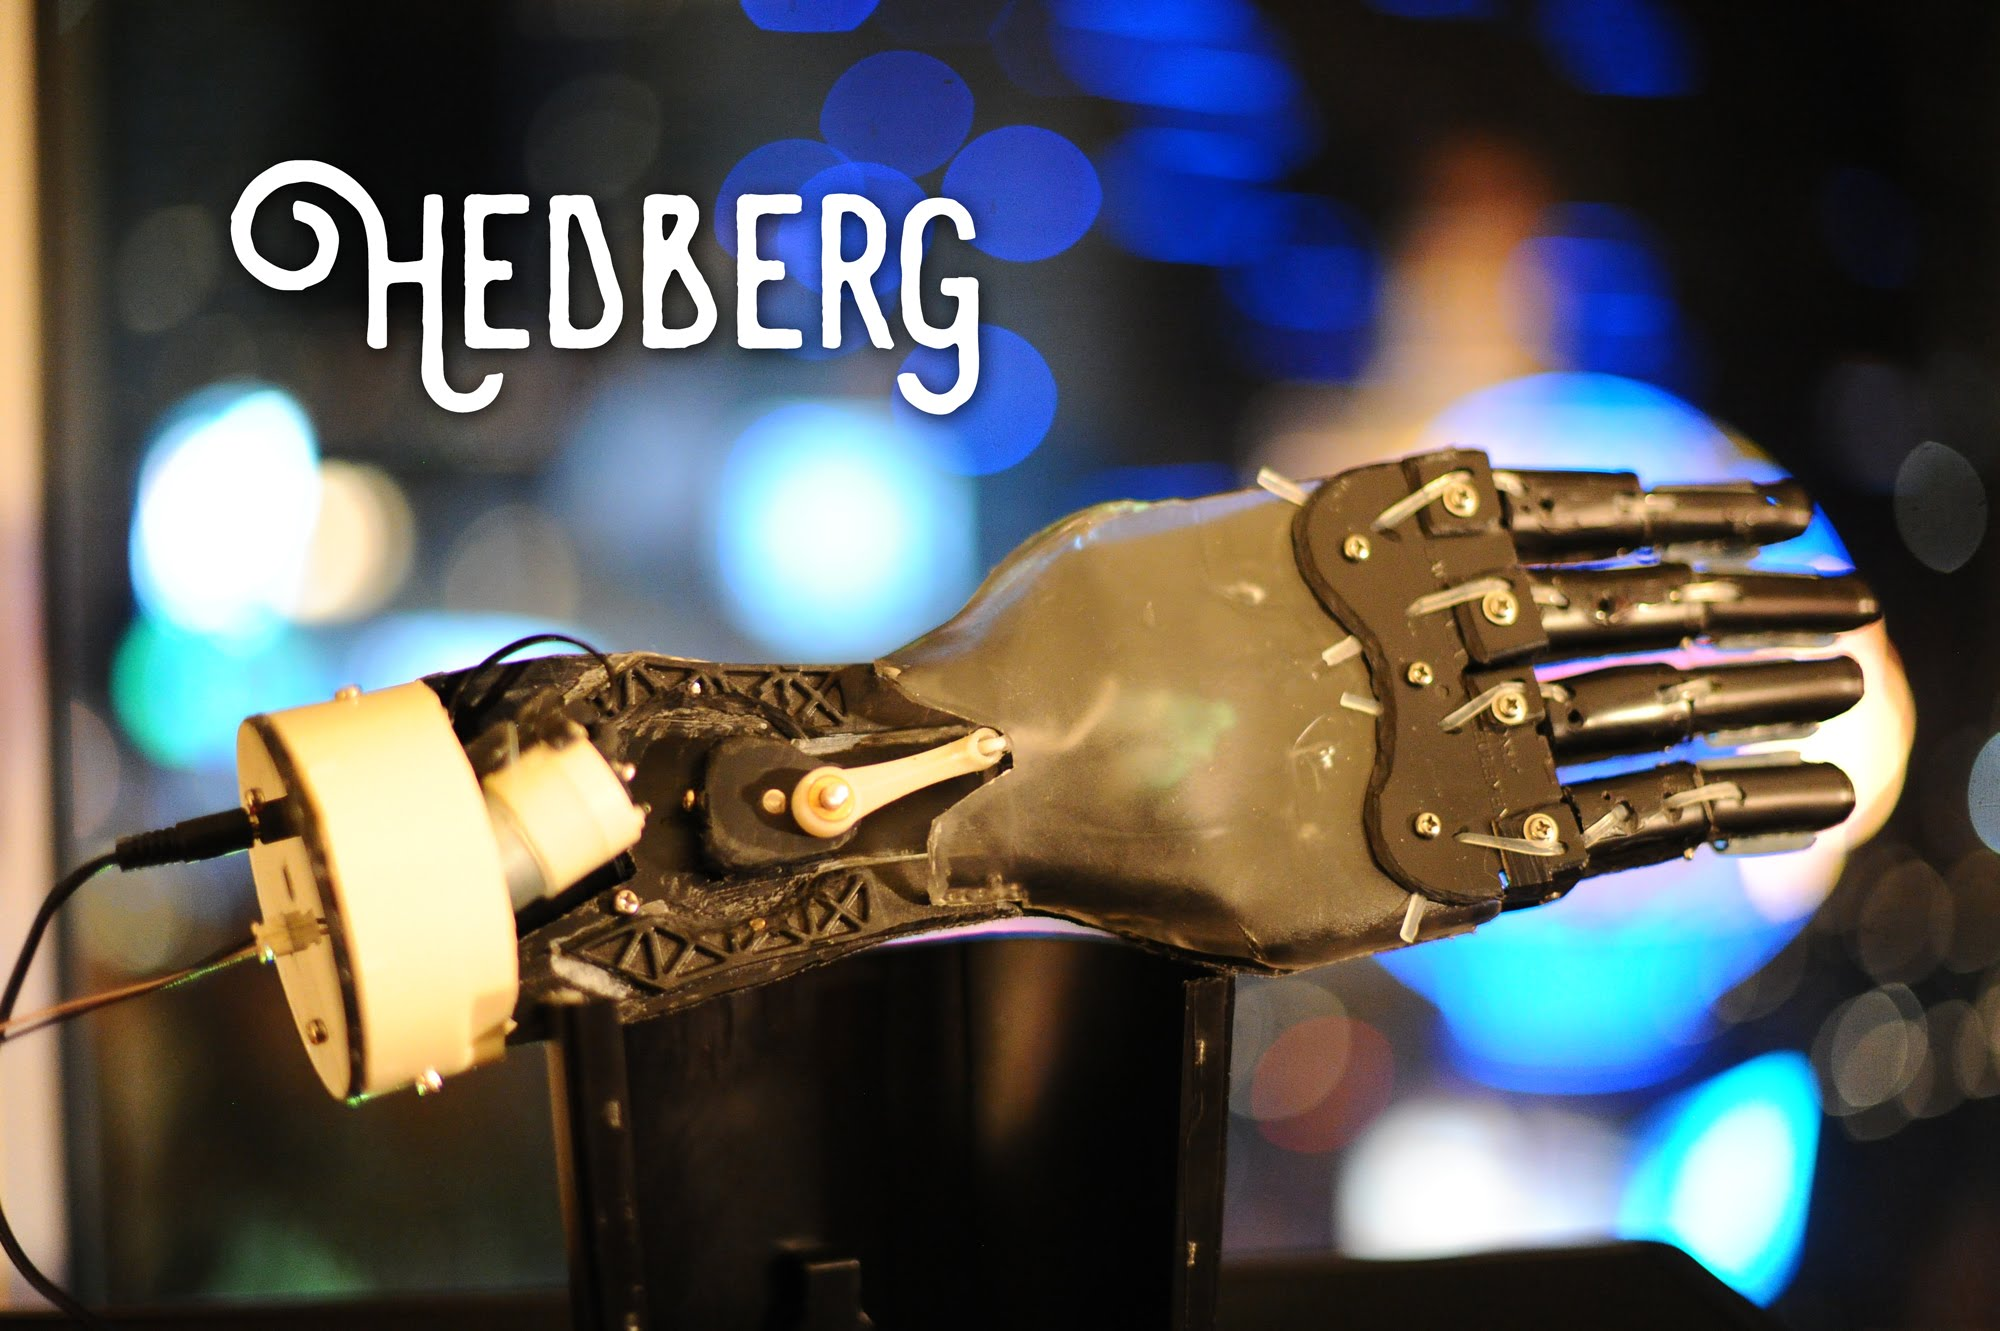 An Incredible Working Bionic Hand Made Entirely From a Disassembled Keurig Coffee Maker